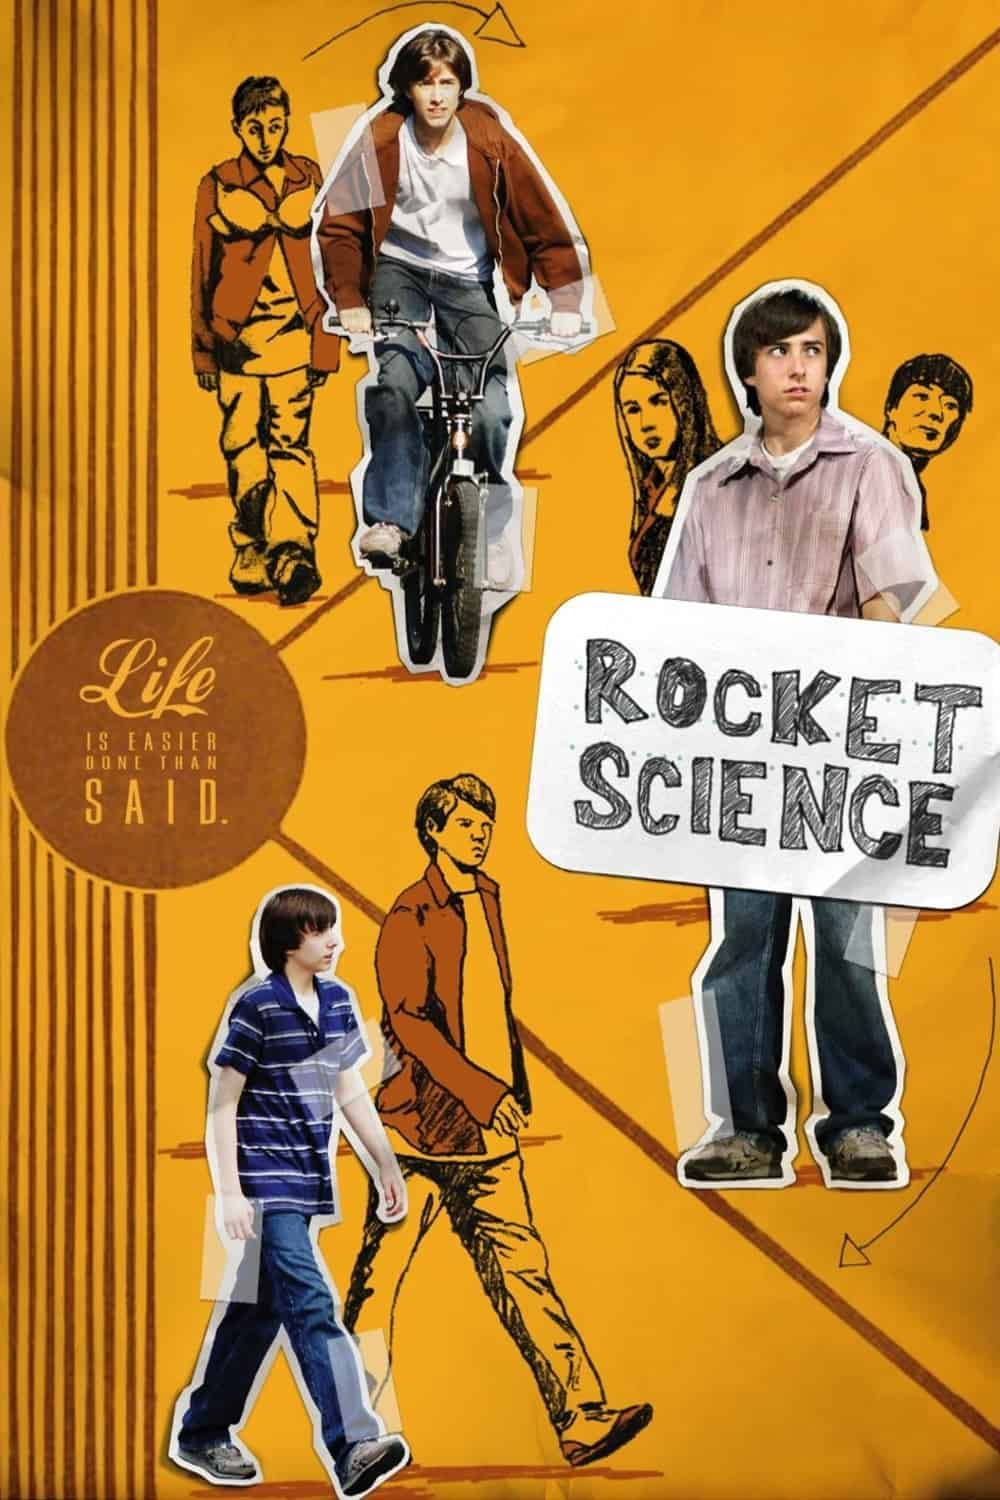 Rocket Science, 2007